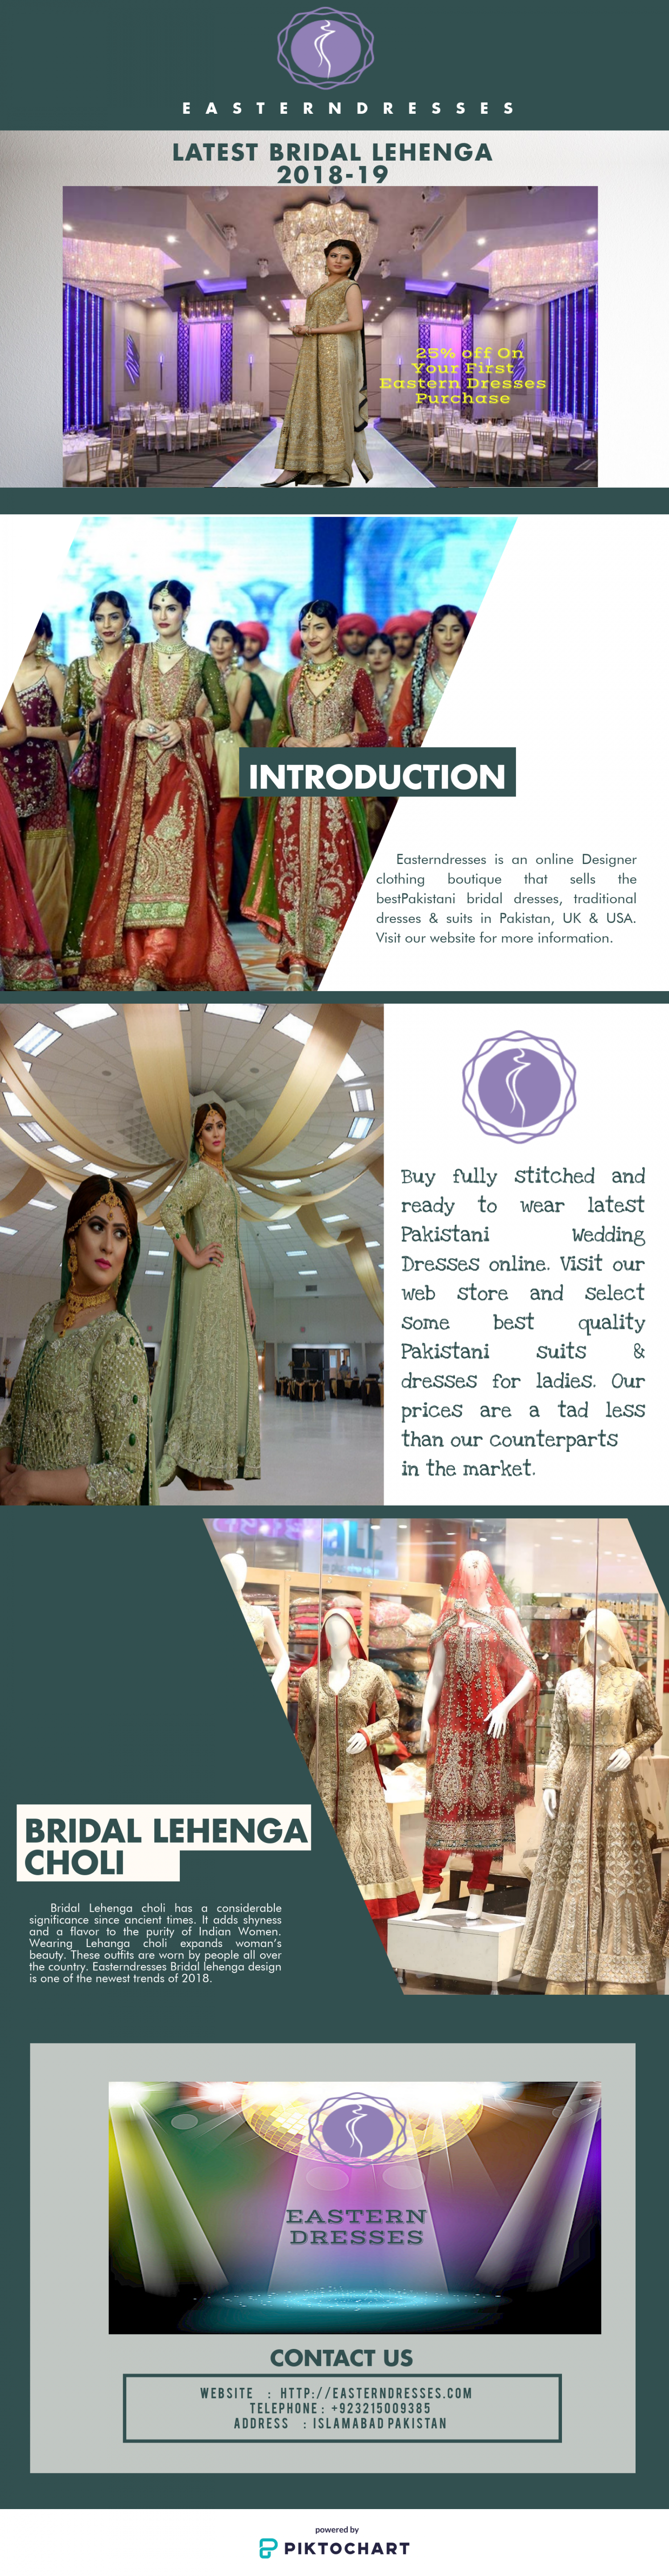 Top Rated Bridal Lehenga 2018 in USA. Infographic